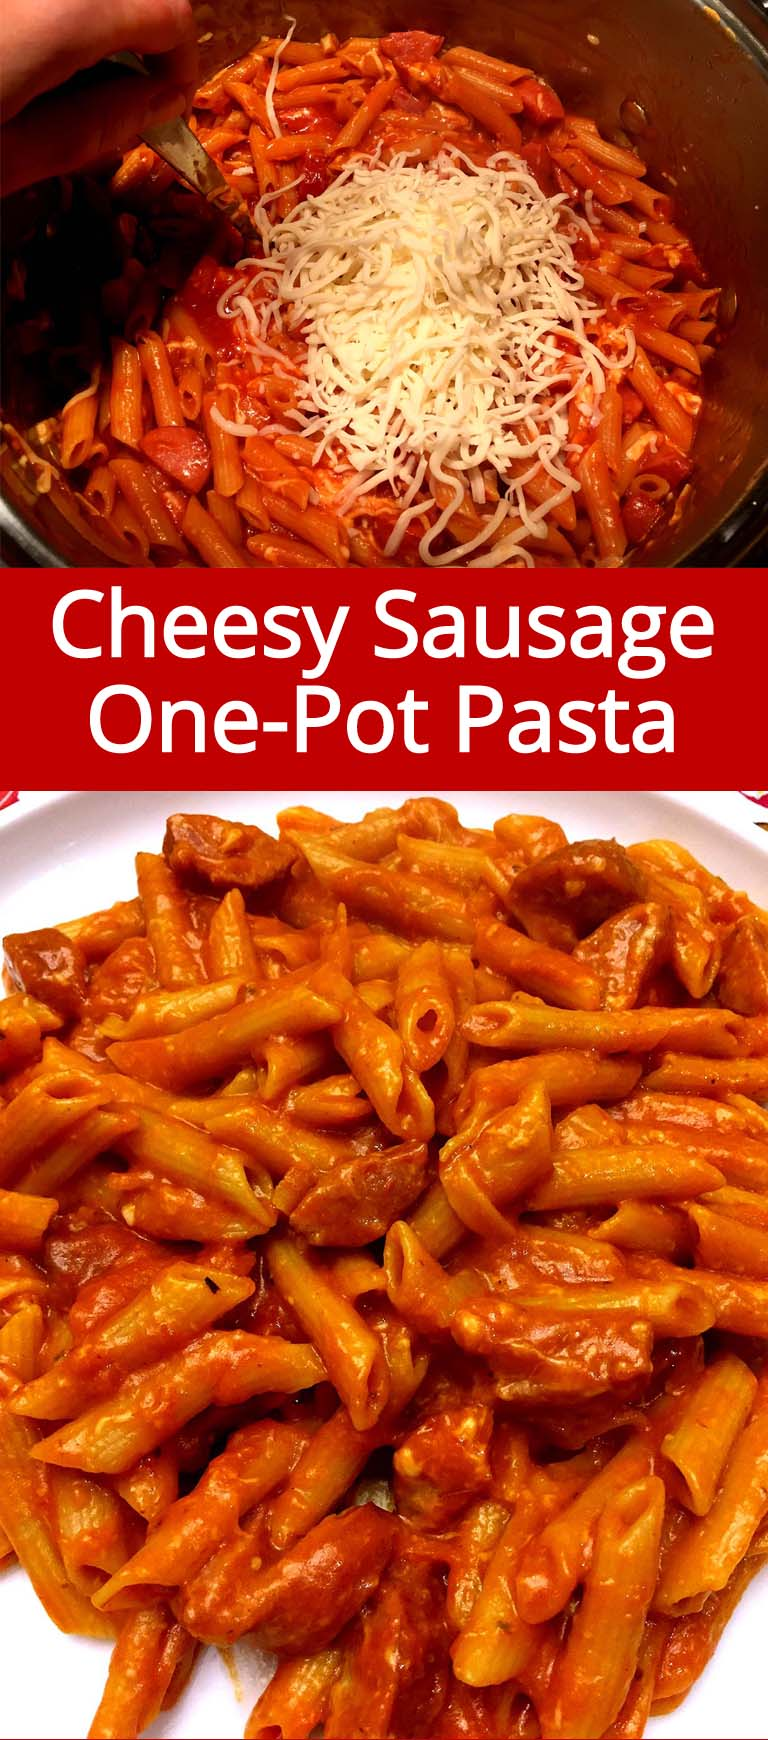 This cheesy sausage pasta is so mouthwatering! It has all my favorite ingredients in it :) Best of all, it's all made in one pot, one-pot pasta is the easiest dinner ever!